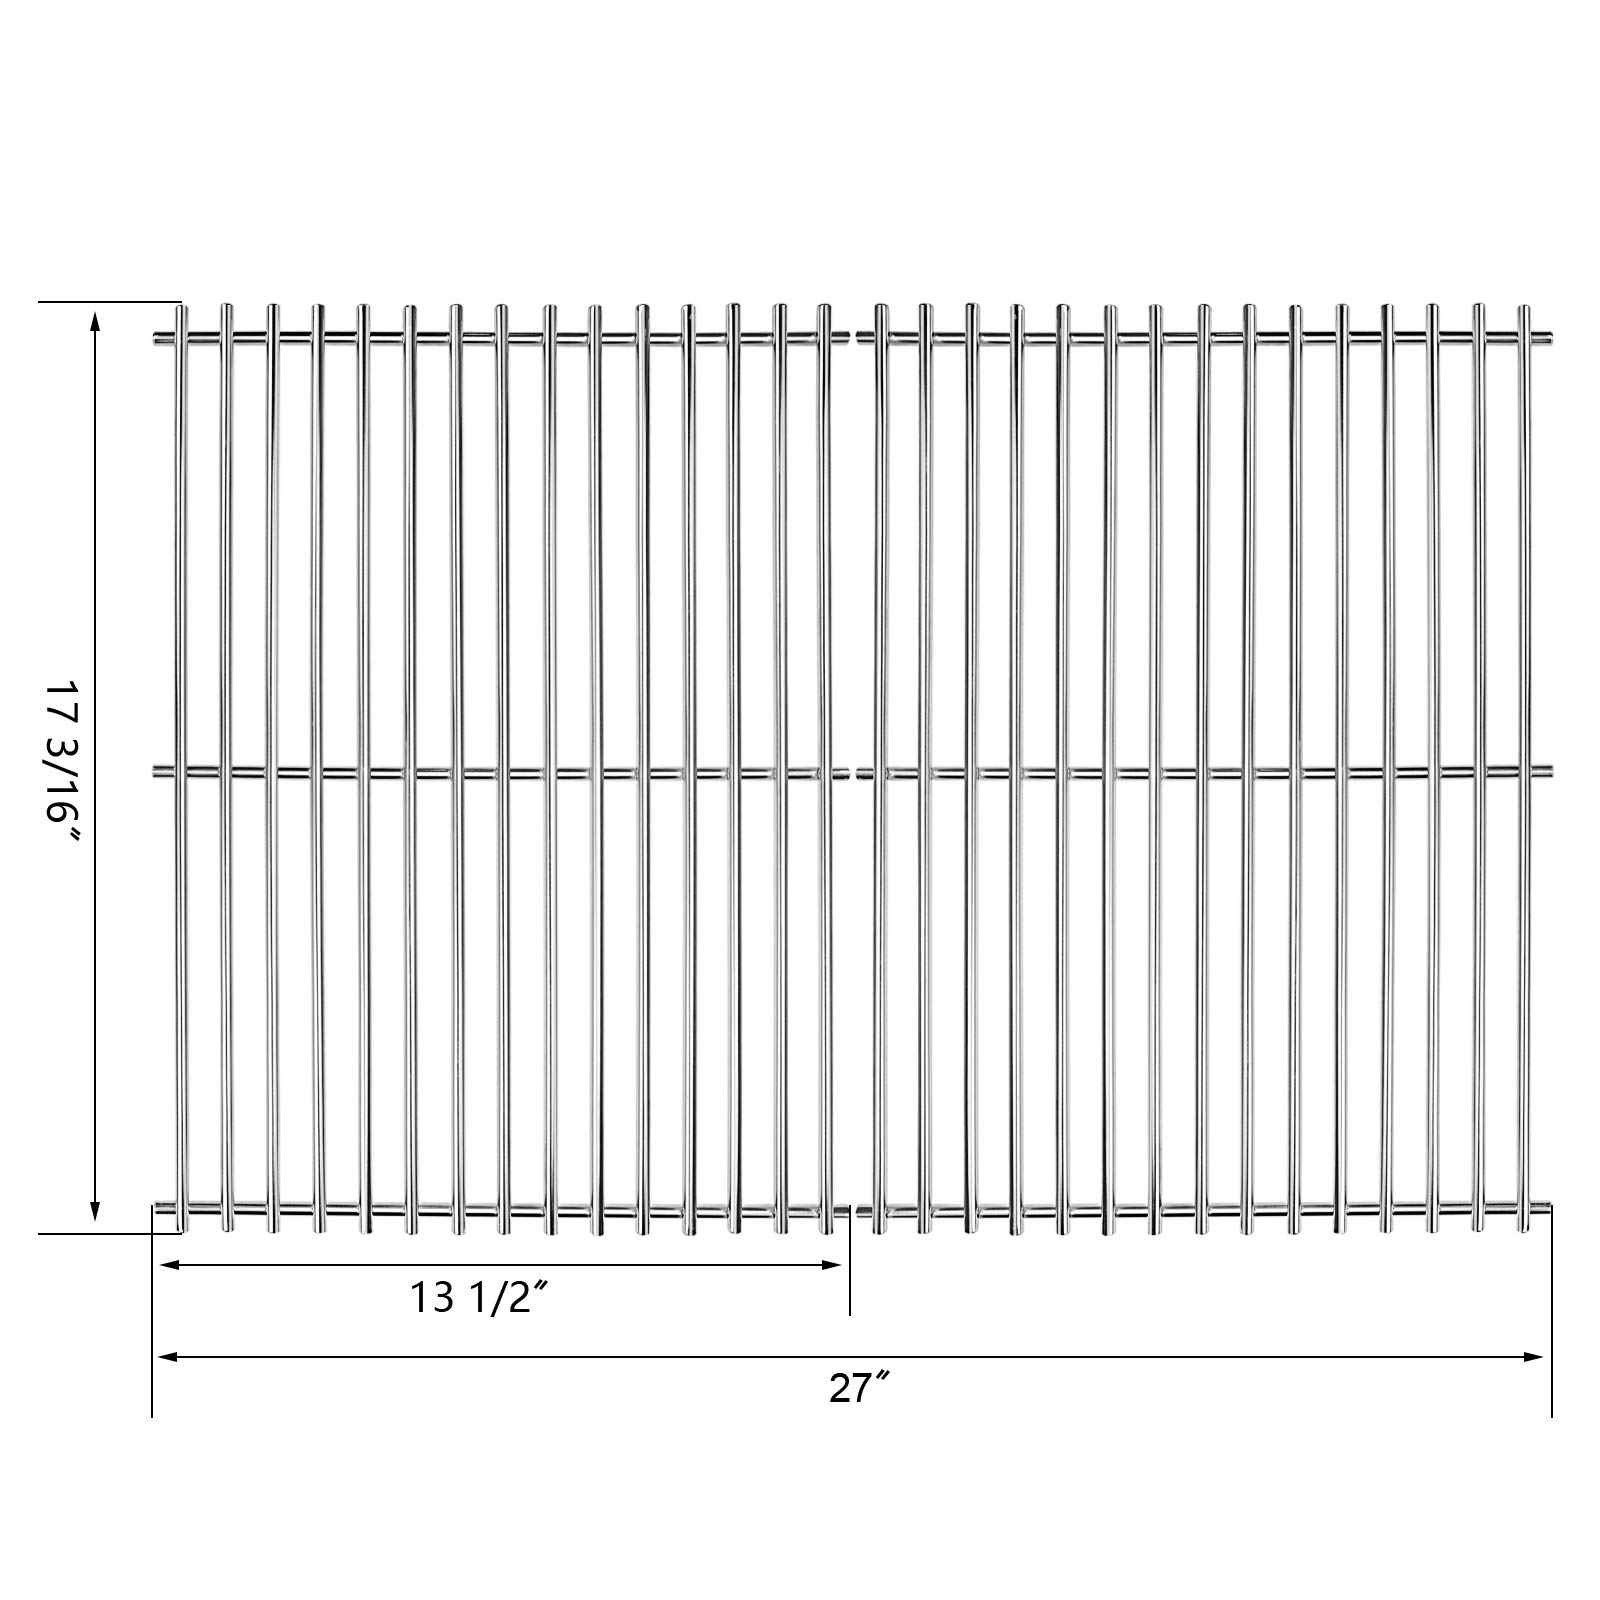 Hisencn Stainless Steel Solid Rod Cooking Grates Replacement Parts for Sunbeam, Grill Master 720-0697, Nexgrill 720-0697E, Uniflame GBC091W Gas Grill Models, Grill Cooking Grid Set of 2, 17 3/16 inch by Hisencn